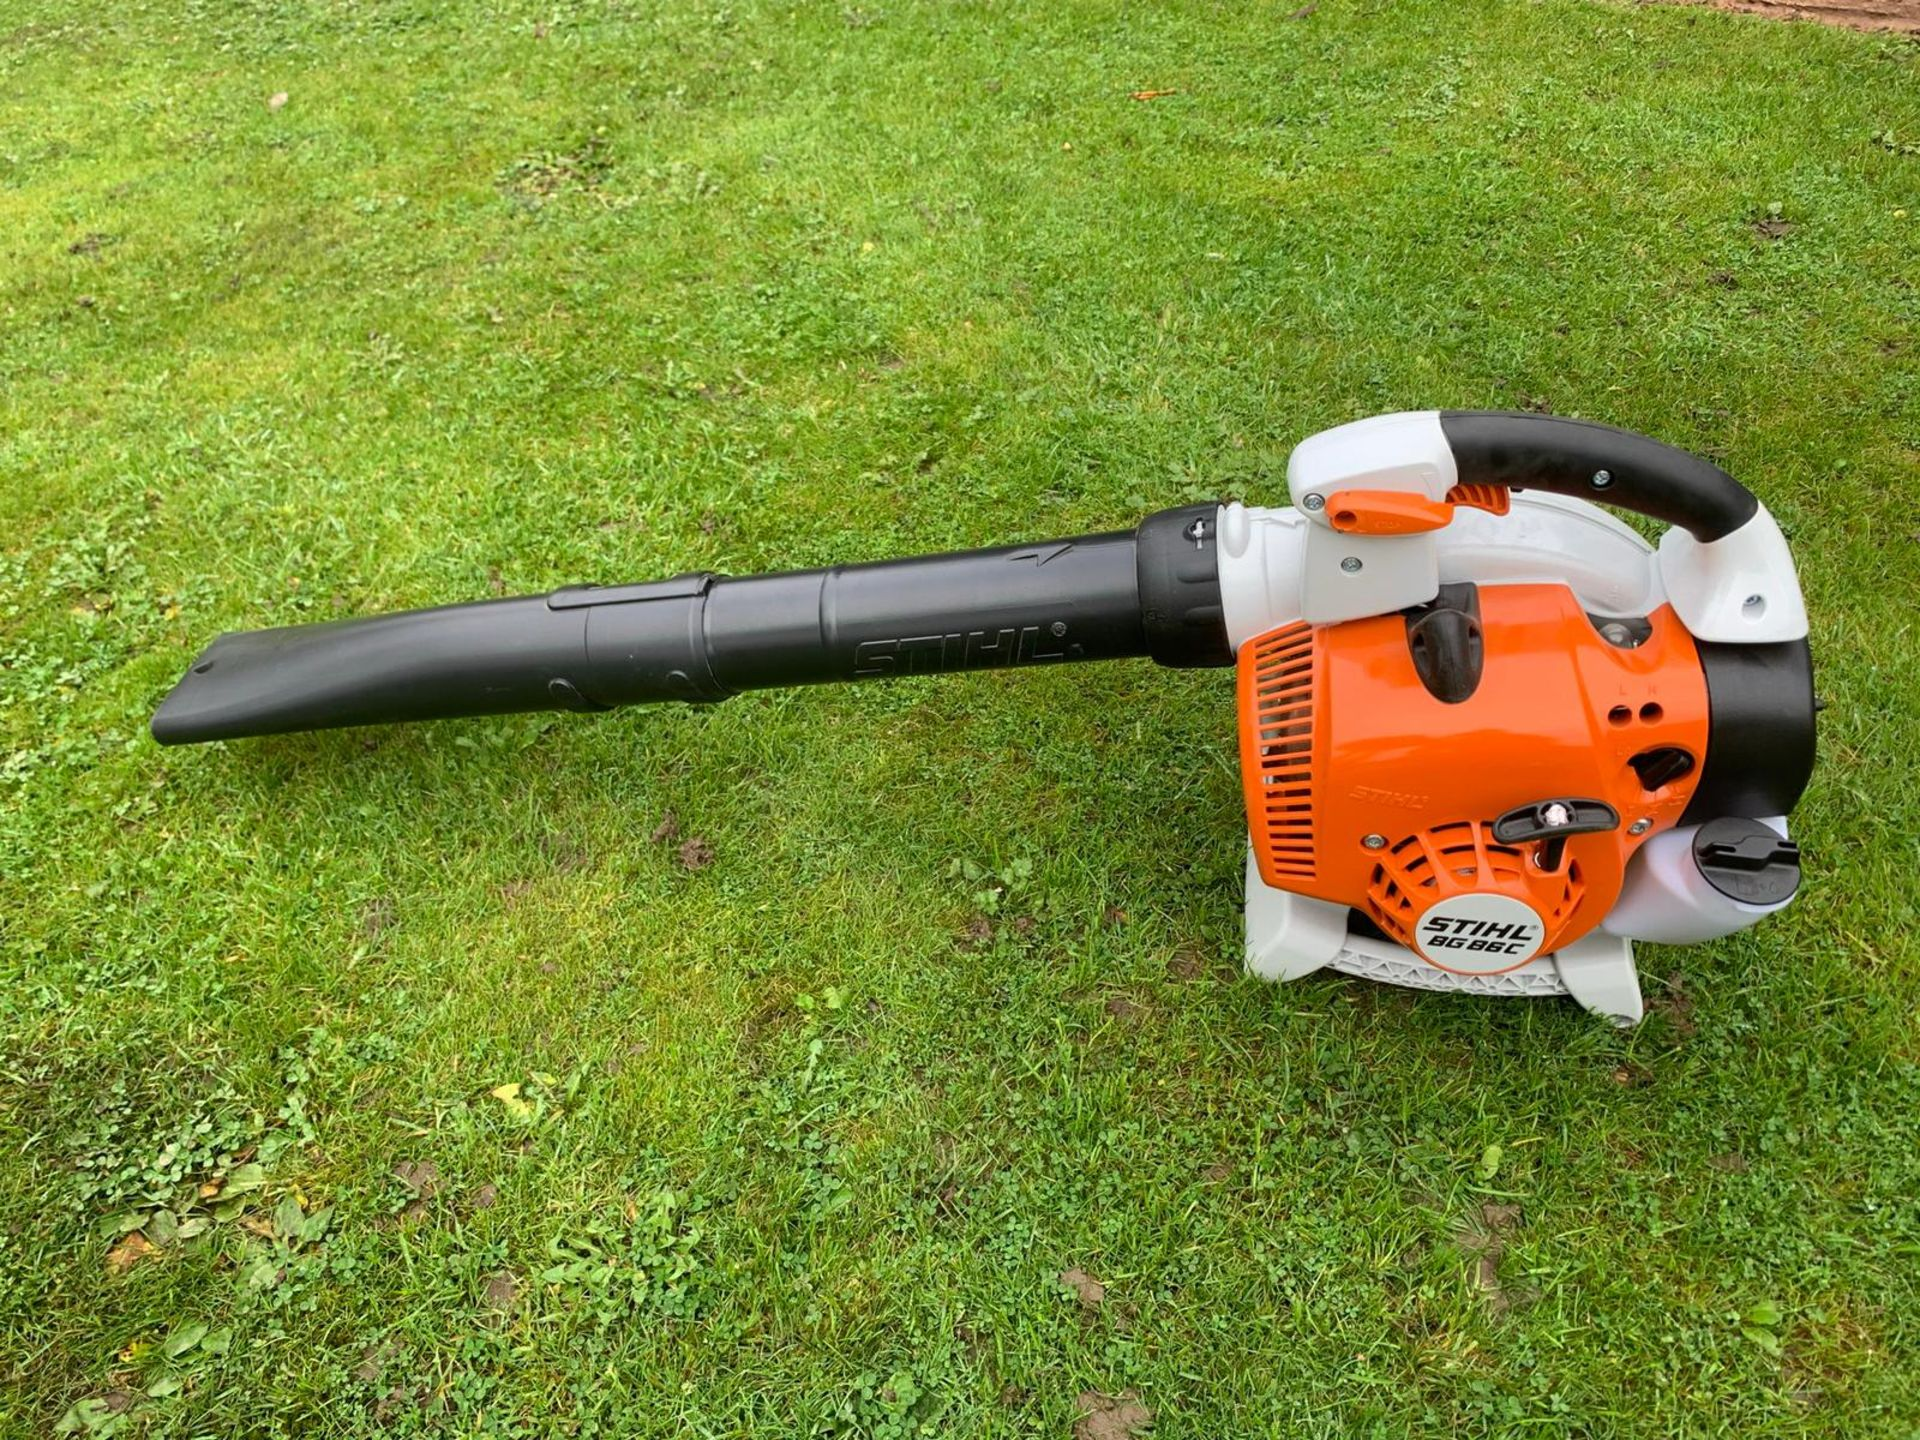 BRAND NEW AND UNUSED STIHL BG86C-E LEAF BLOWER, C/W PIPES AND MANUAL *NO VAT* - Image 4 of 4